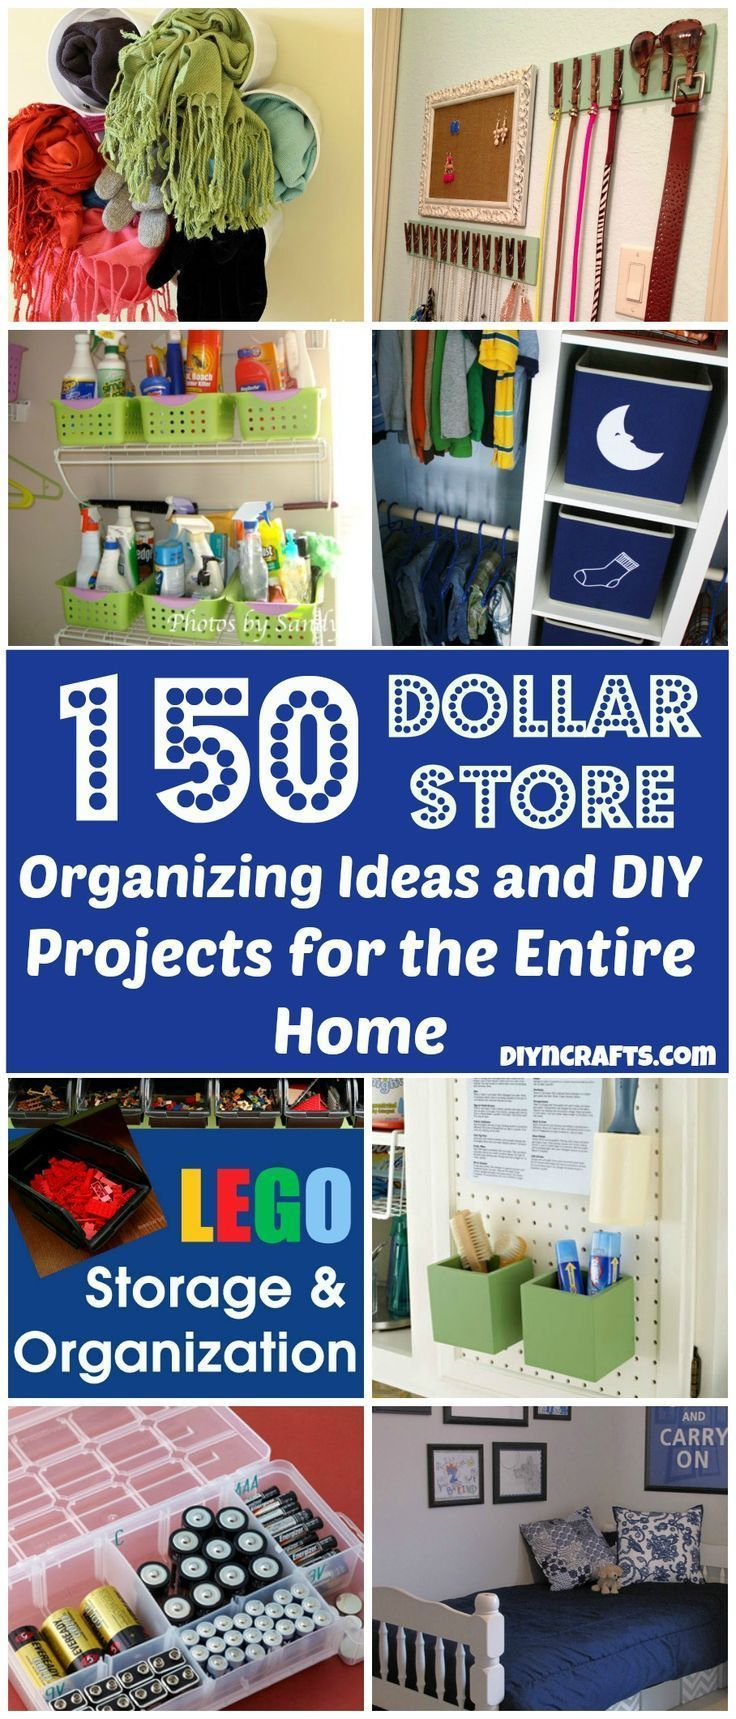 These are some great, inventive ideas for storage. If you're trying to avoid buying cheap, plastic items, adapt these ideas for vintage, found, swapped or already-owned containers! - 150 Dollar Store Organizing Ideas and Projects for the Entire Home